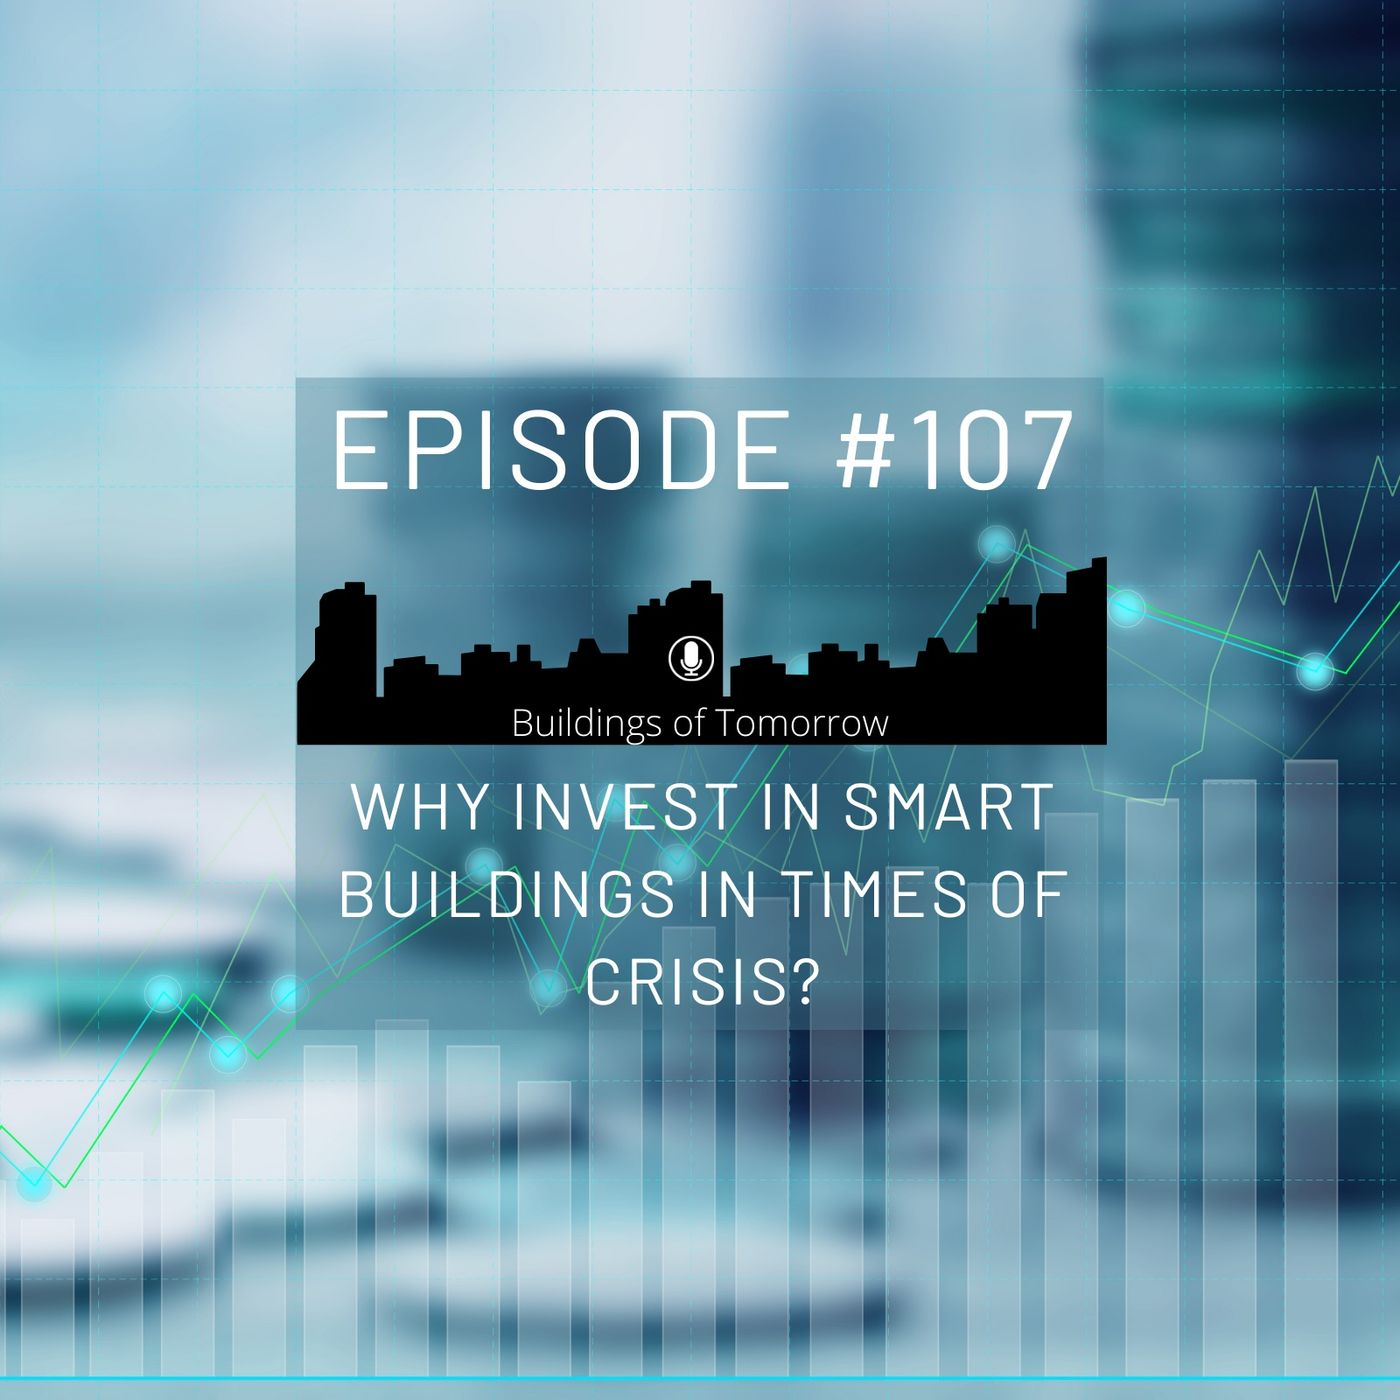 #107 Why invest in Smart Buildings in times of crisis?